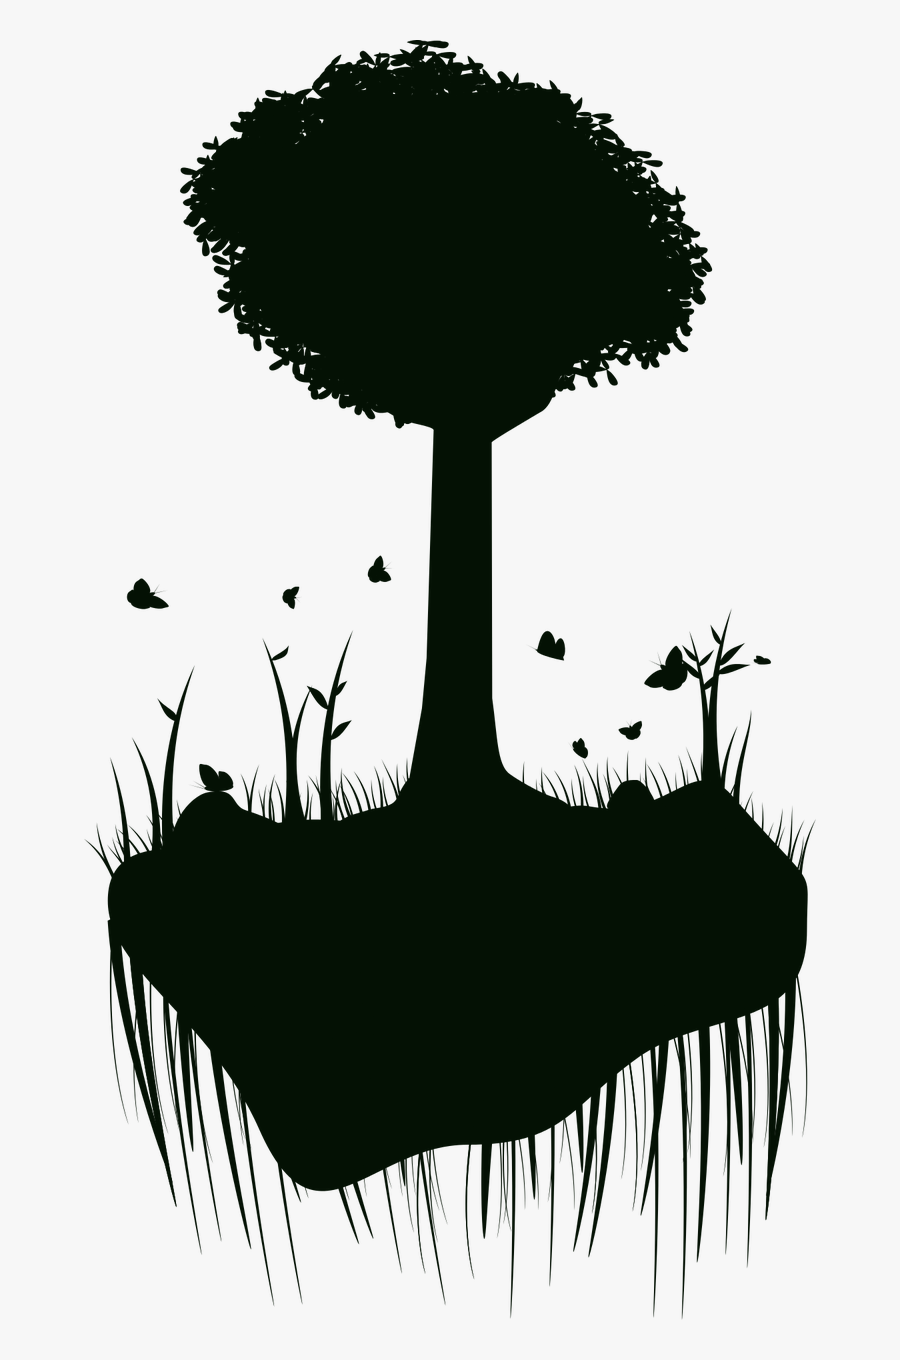 Silhouette Tree Island Free Picture - Floating Island Silhouette, Transparent Clipart